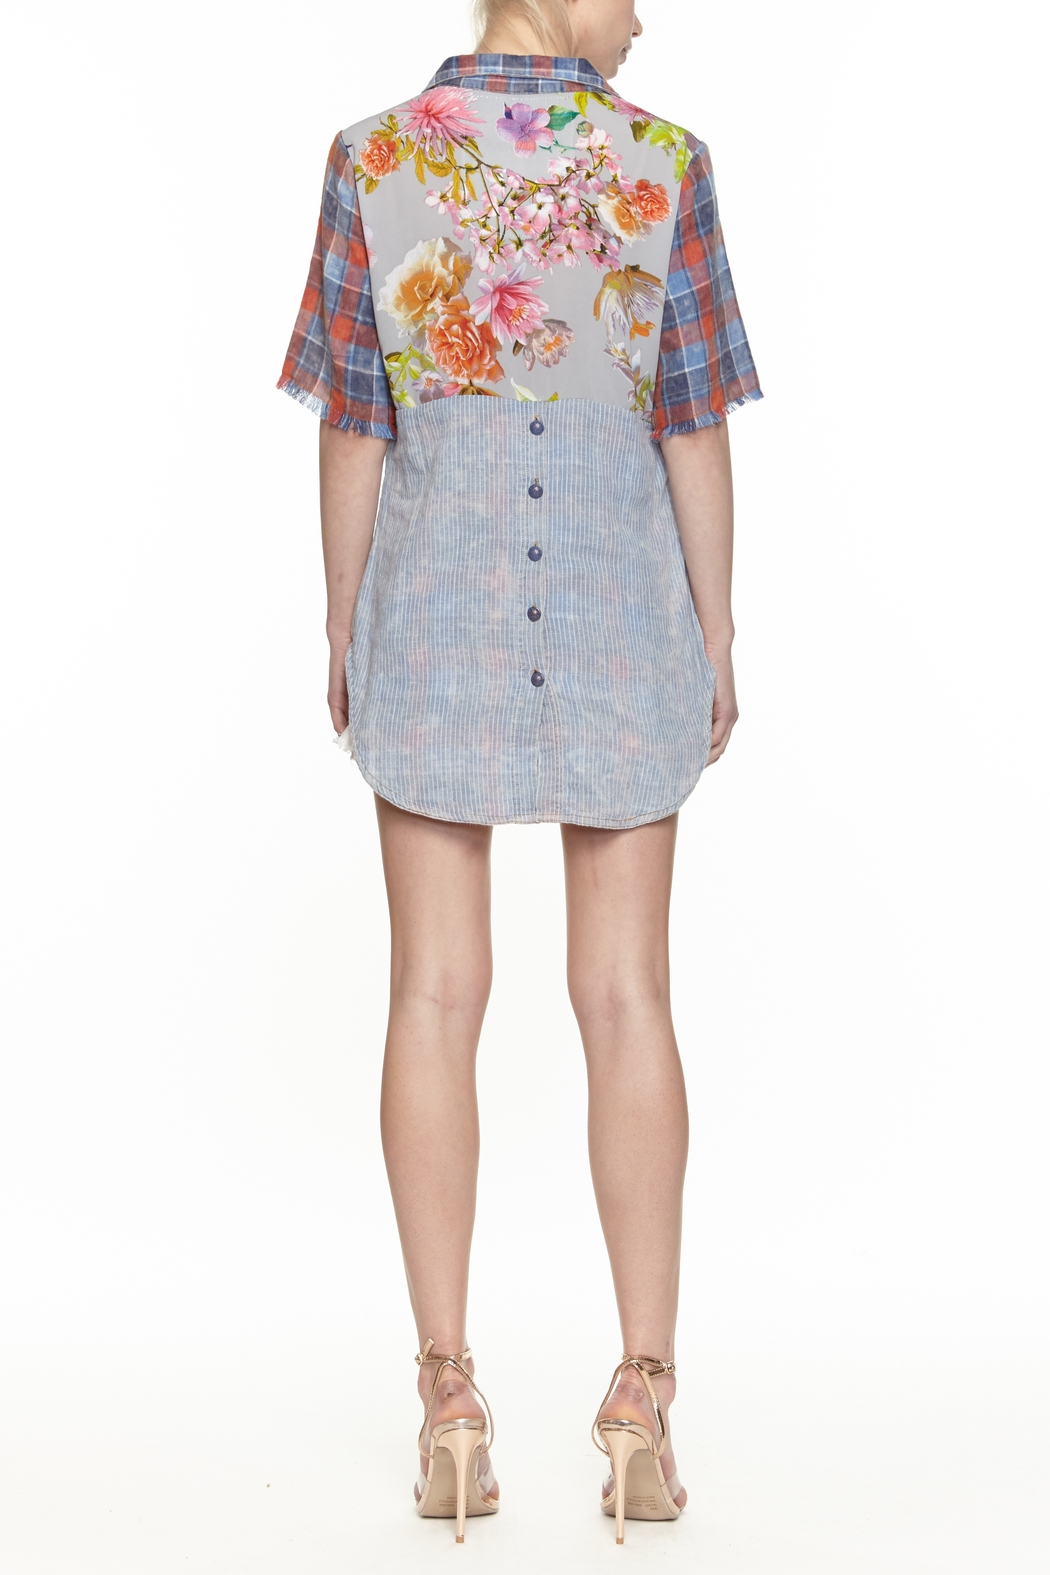 Aratta Margaret is a Pearl Shirt - Front Full Image